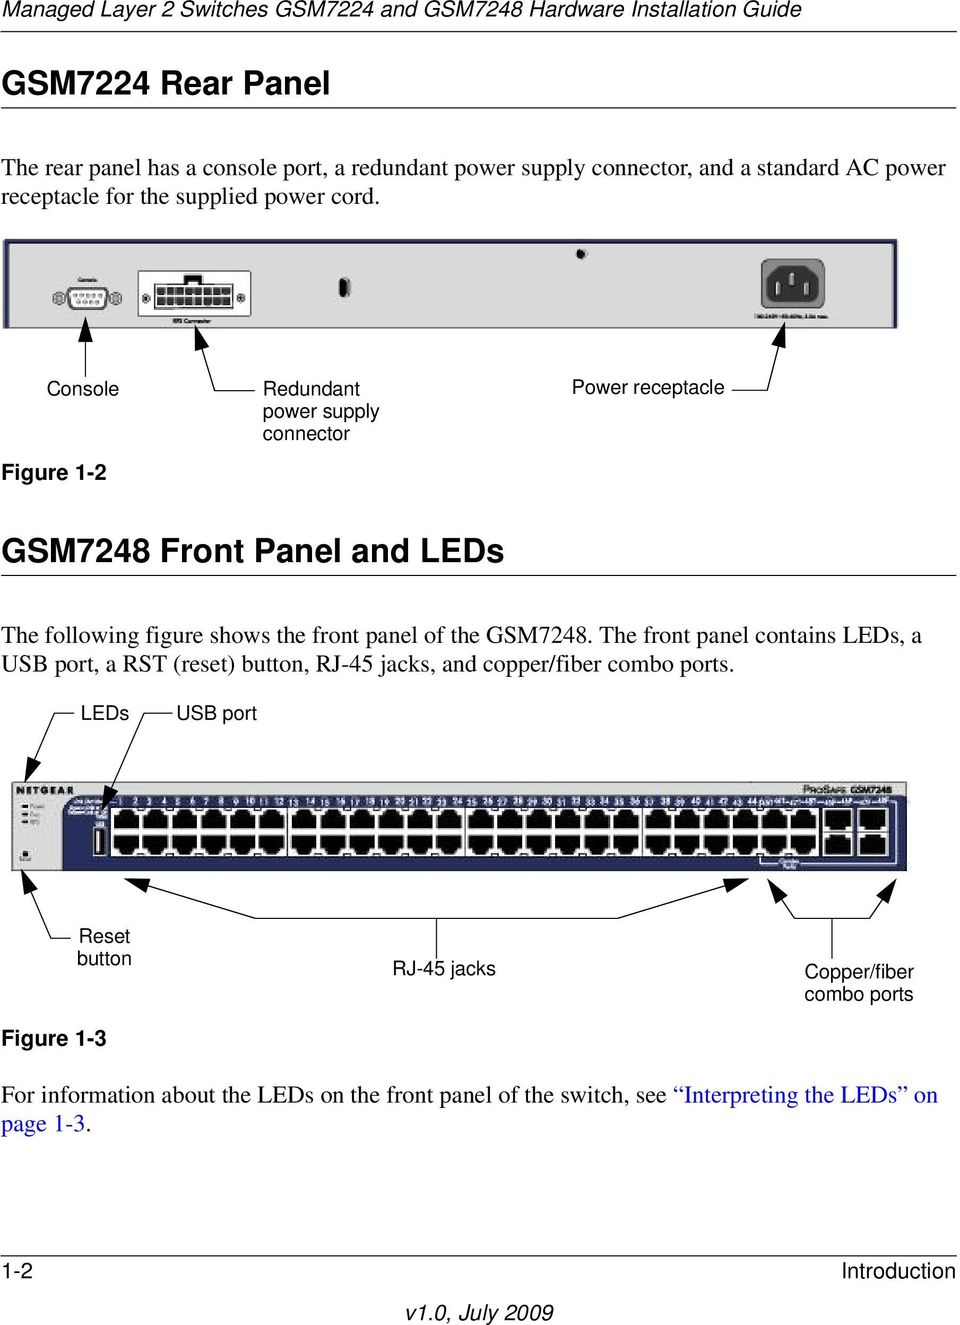 GSM7248. The front panel contains LEDs, a USB port, a RST (reset) button, RJ-45 jacks, and copper/fiber combo ports.